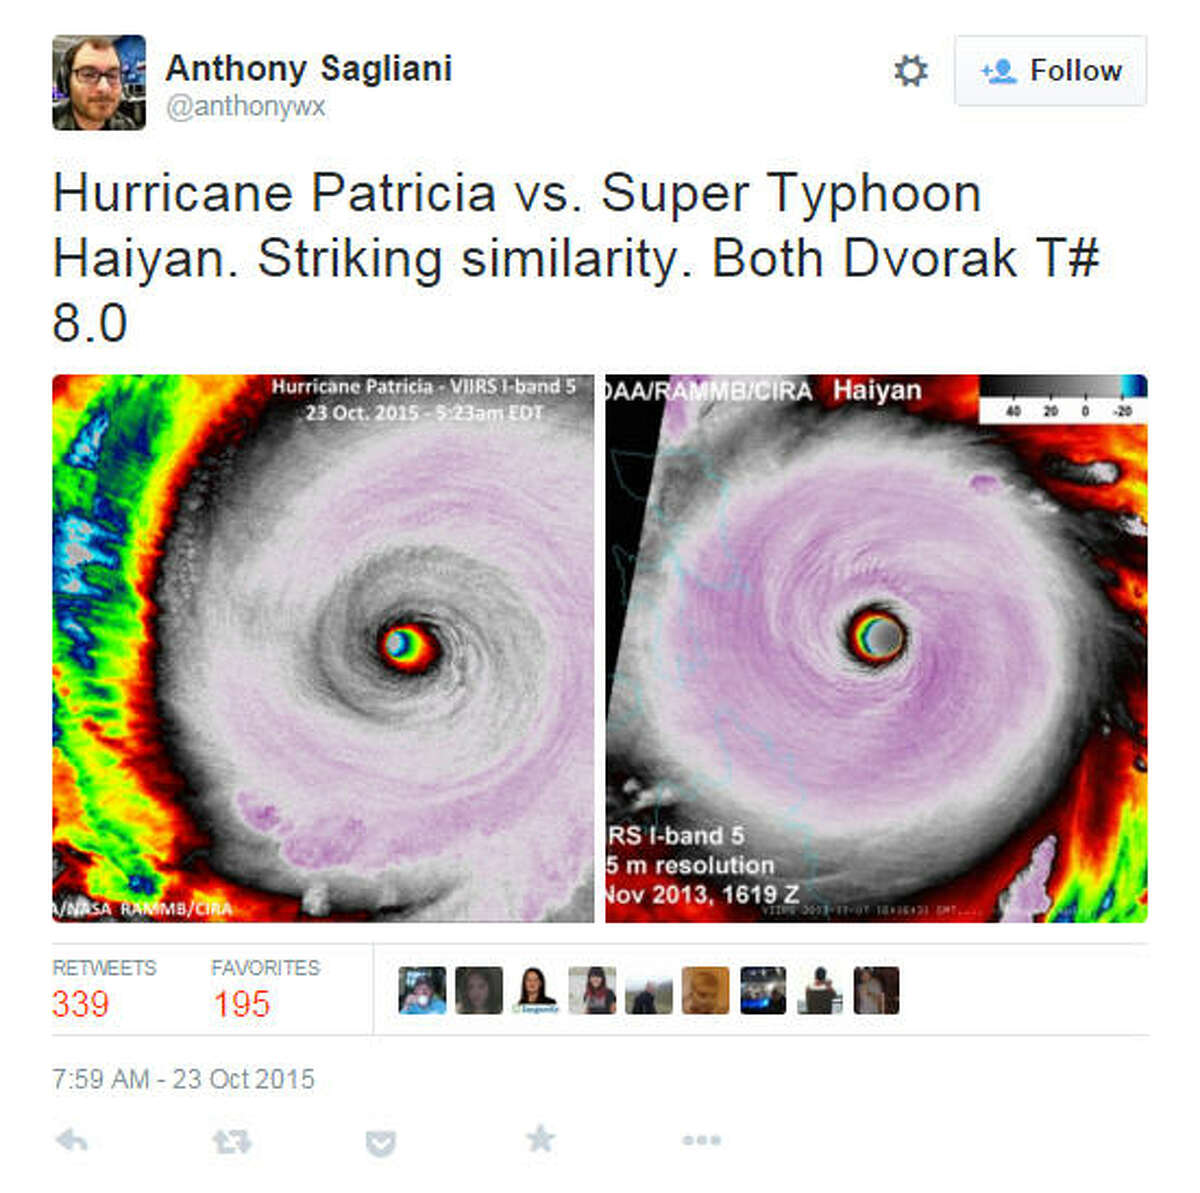 A comparison between Hurricane Patricia and Super Typhoon Haiyan. The typhoon, also one of the strongest storms ever recorded, killed thousands in the Philippines in 2012. Source (Anthony Sagliani / @anthonywx)